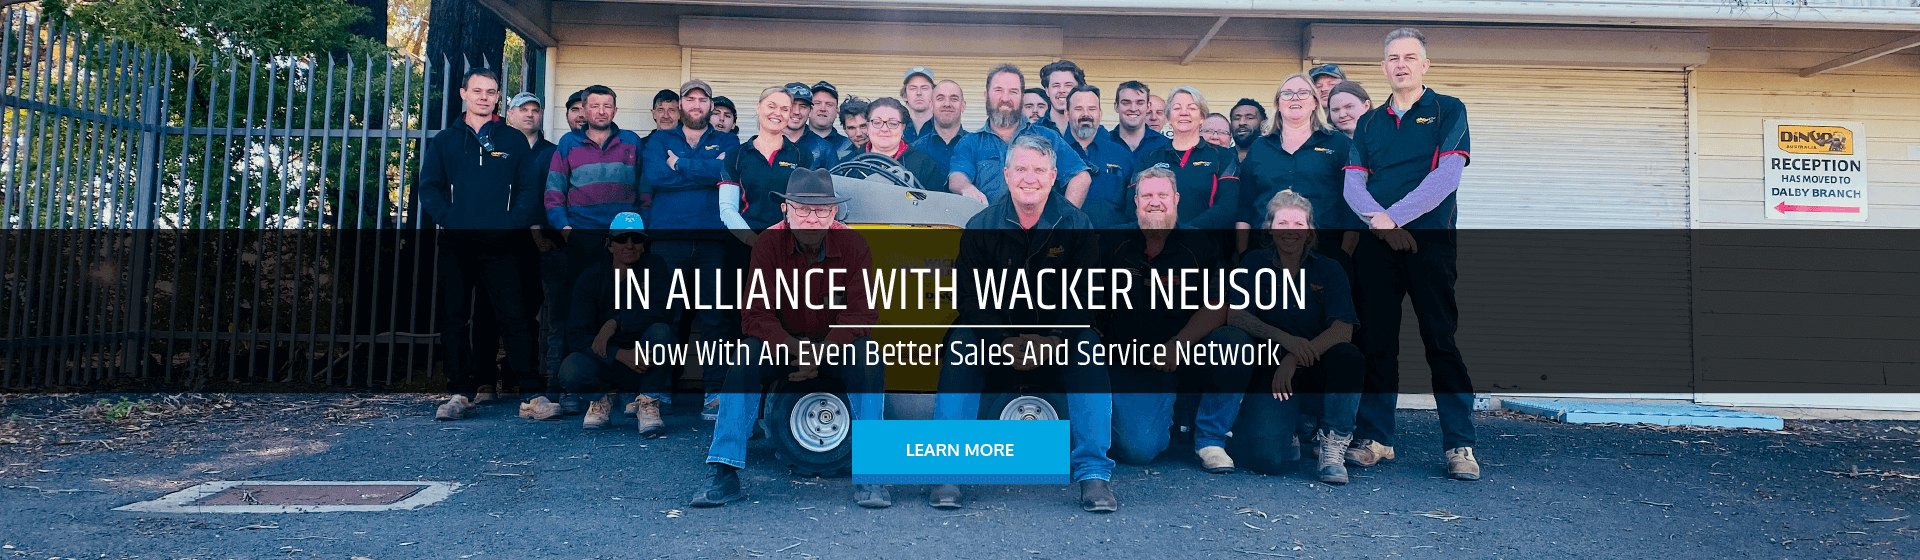 In Alliance With Wacker Neuson. Now With An Even Better Sales And Service Network.